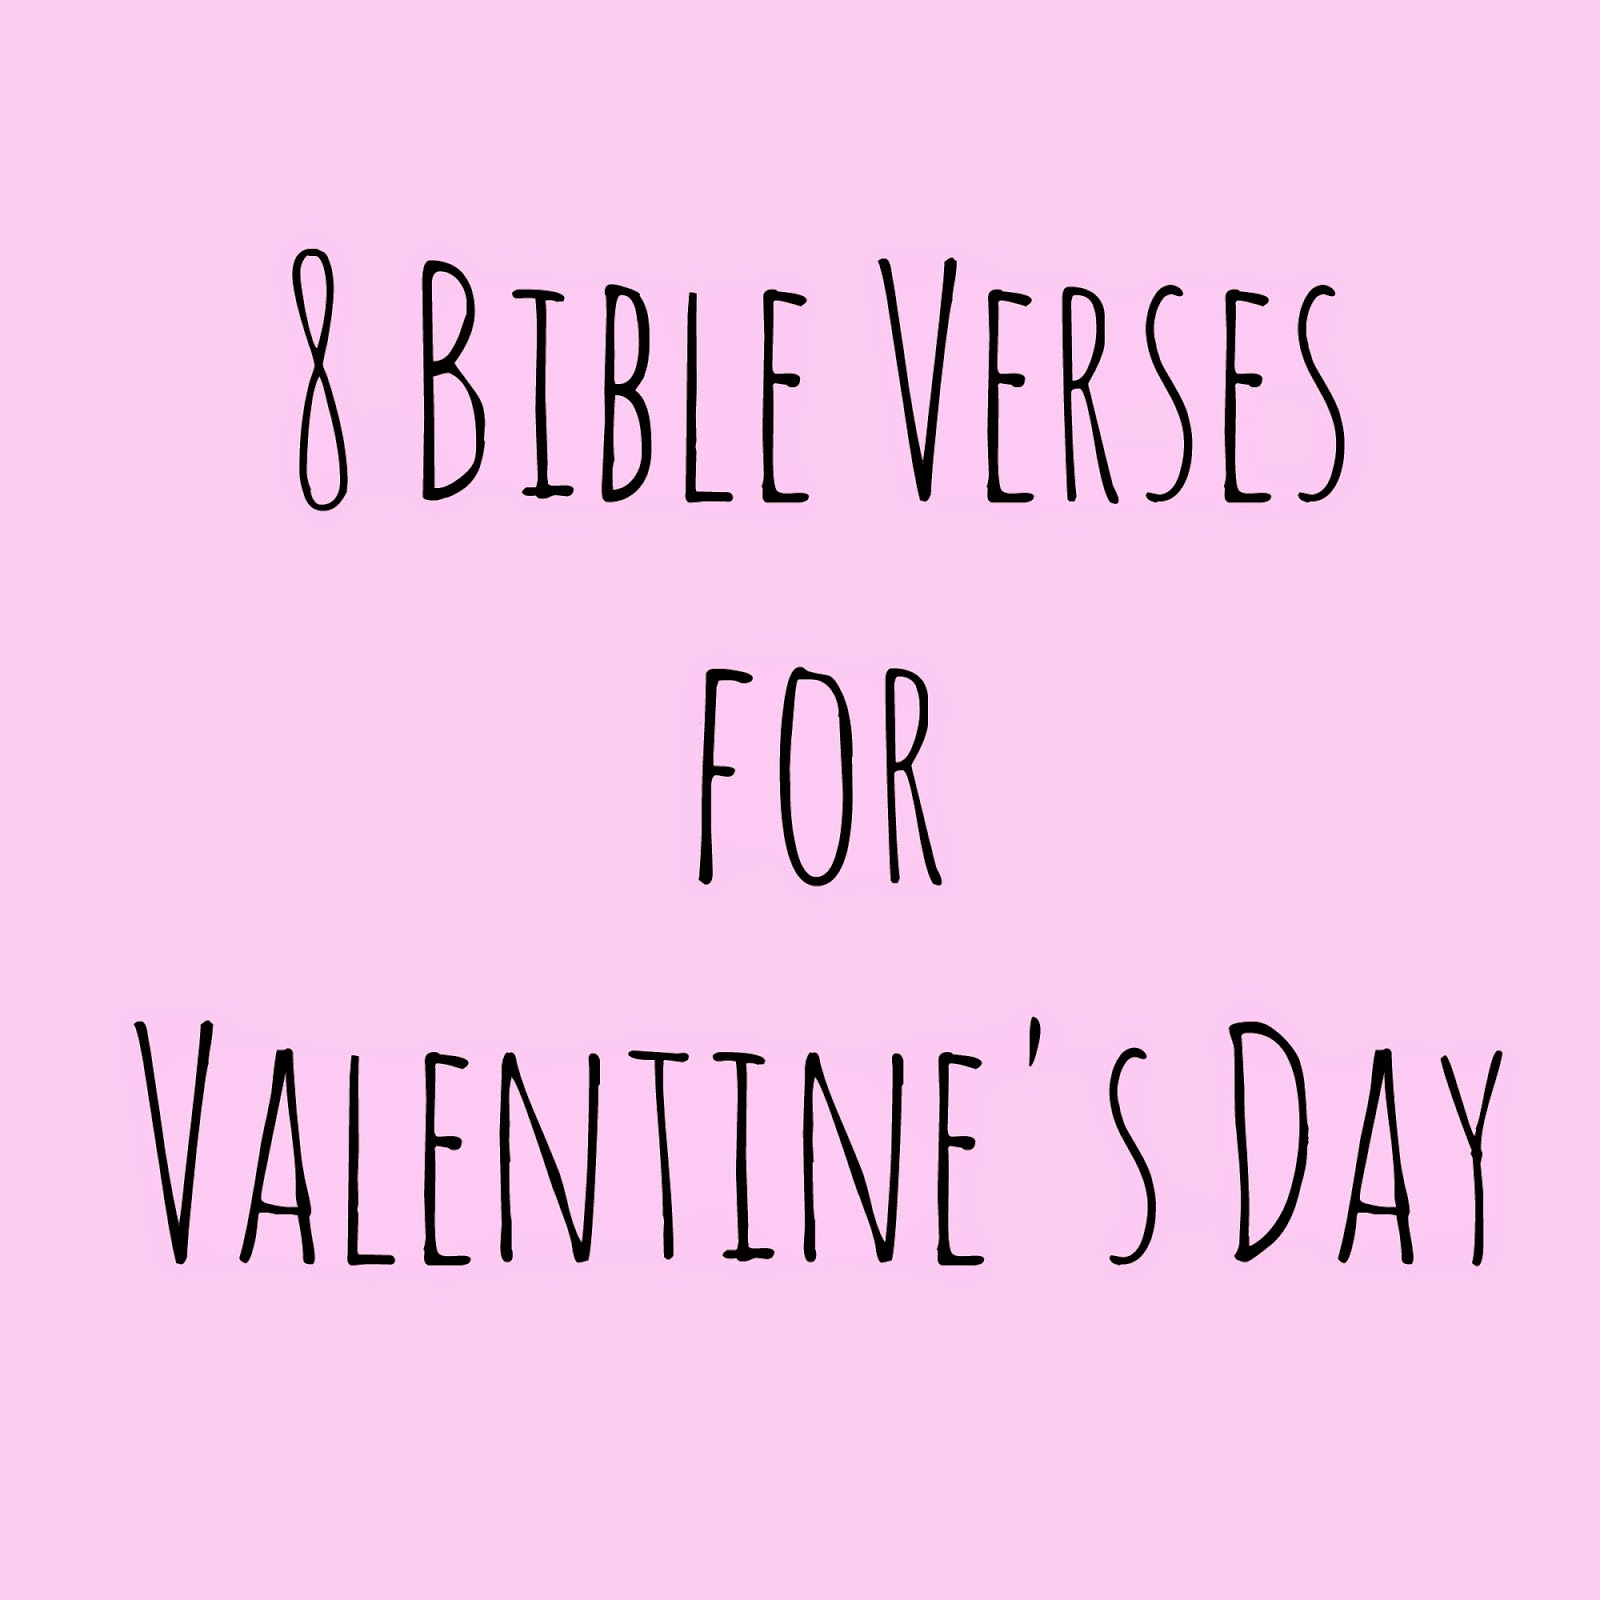 8 bible verses for valentines day - Bible Verse For Valentines Day